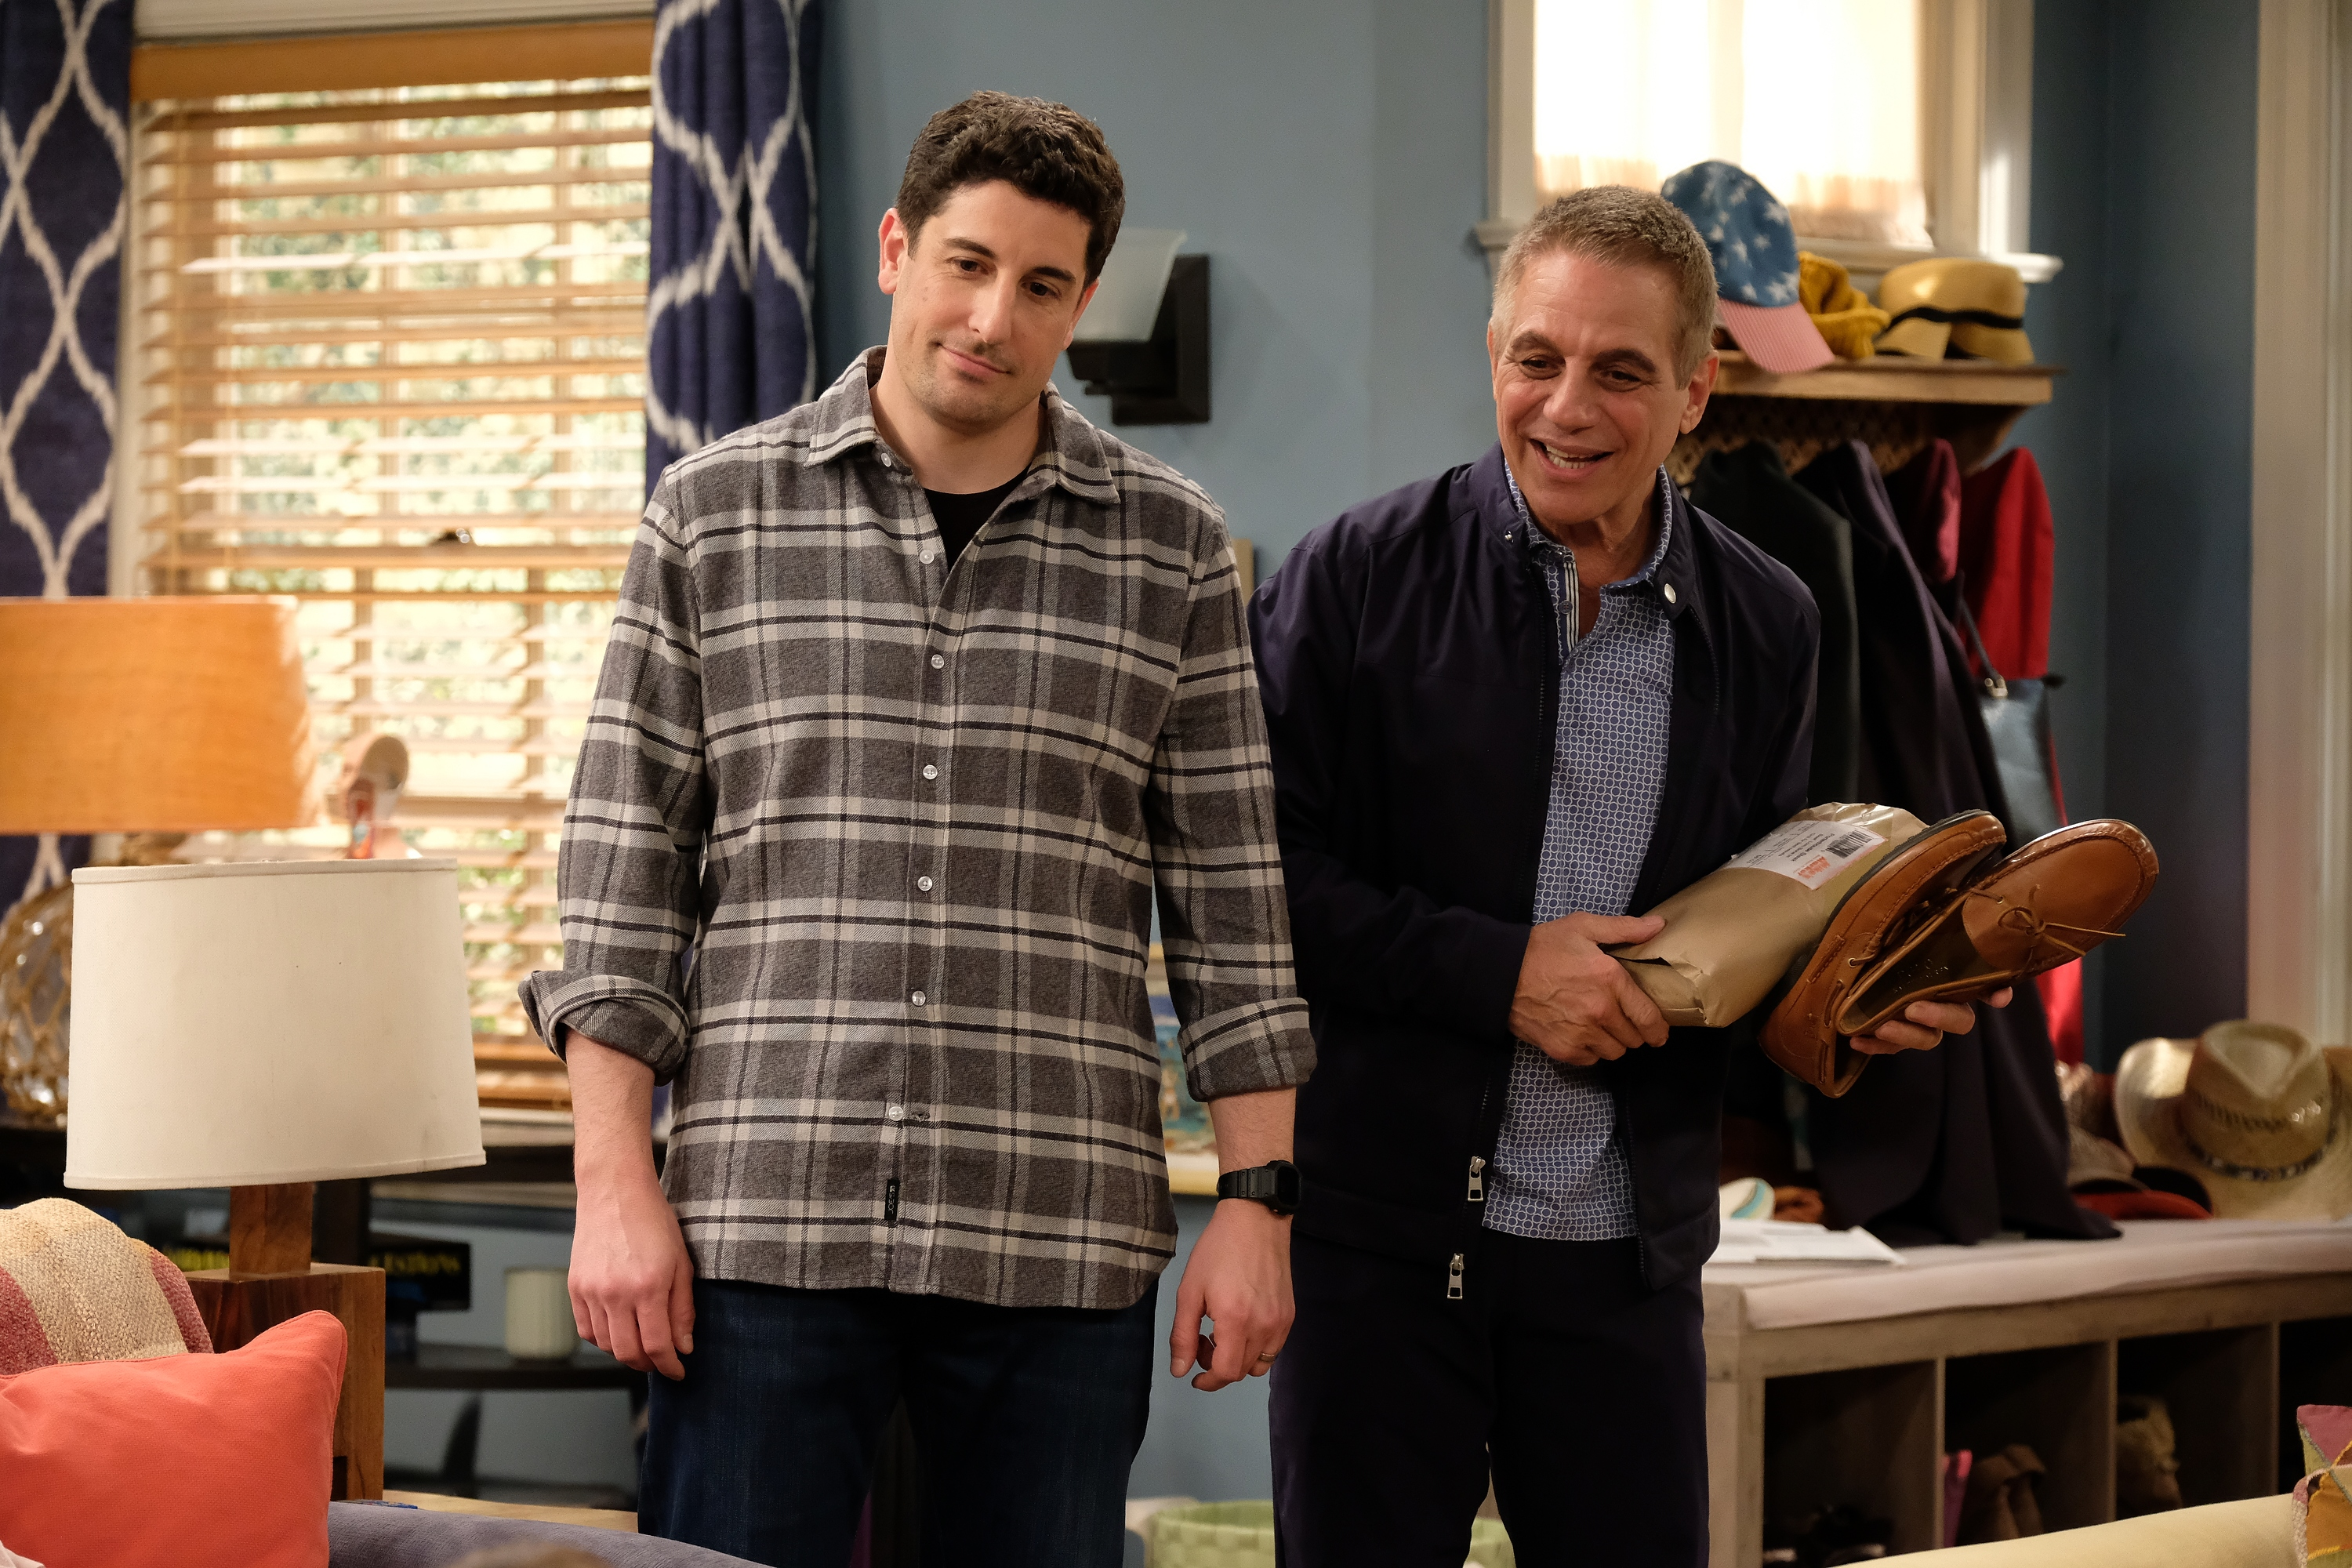 Tony Danza, Outmatched, Jason Biggs